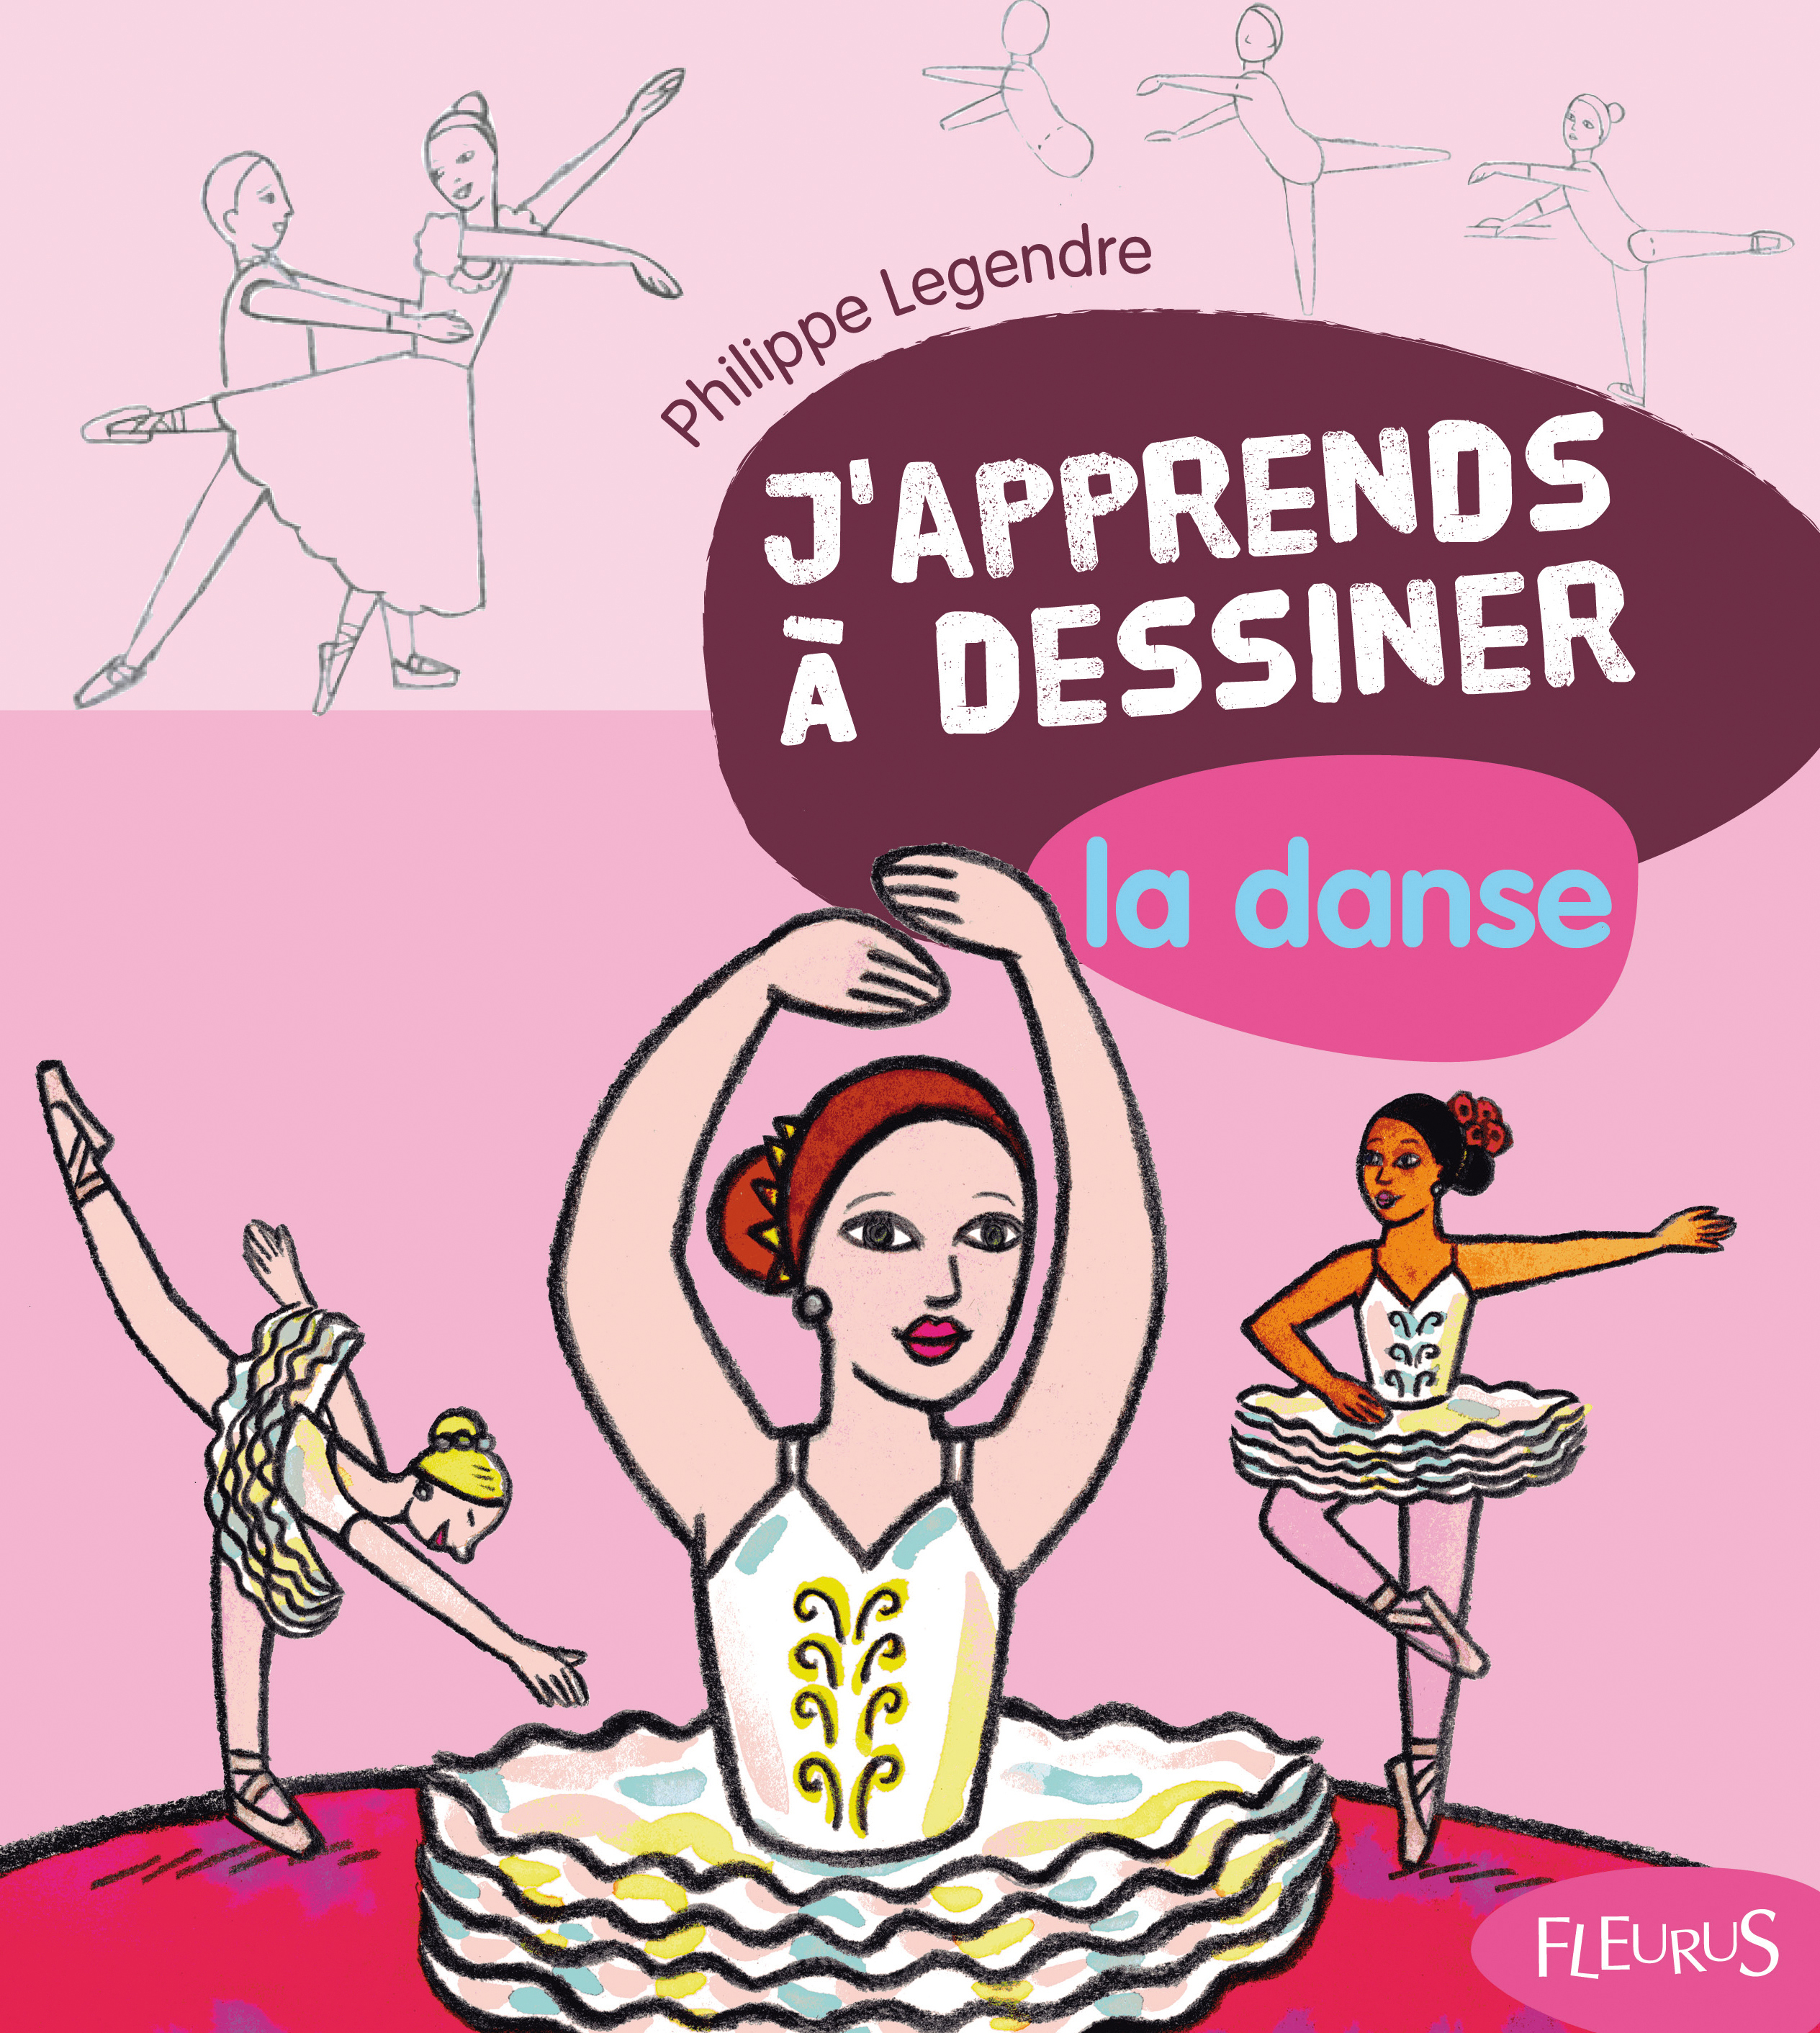 J'APPRENDS A DESSINER LA DANSE